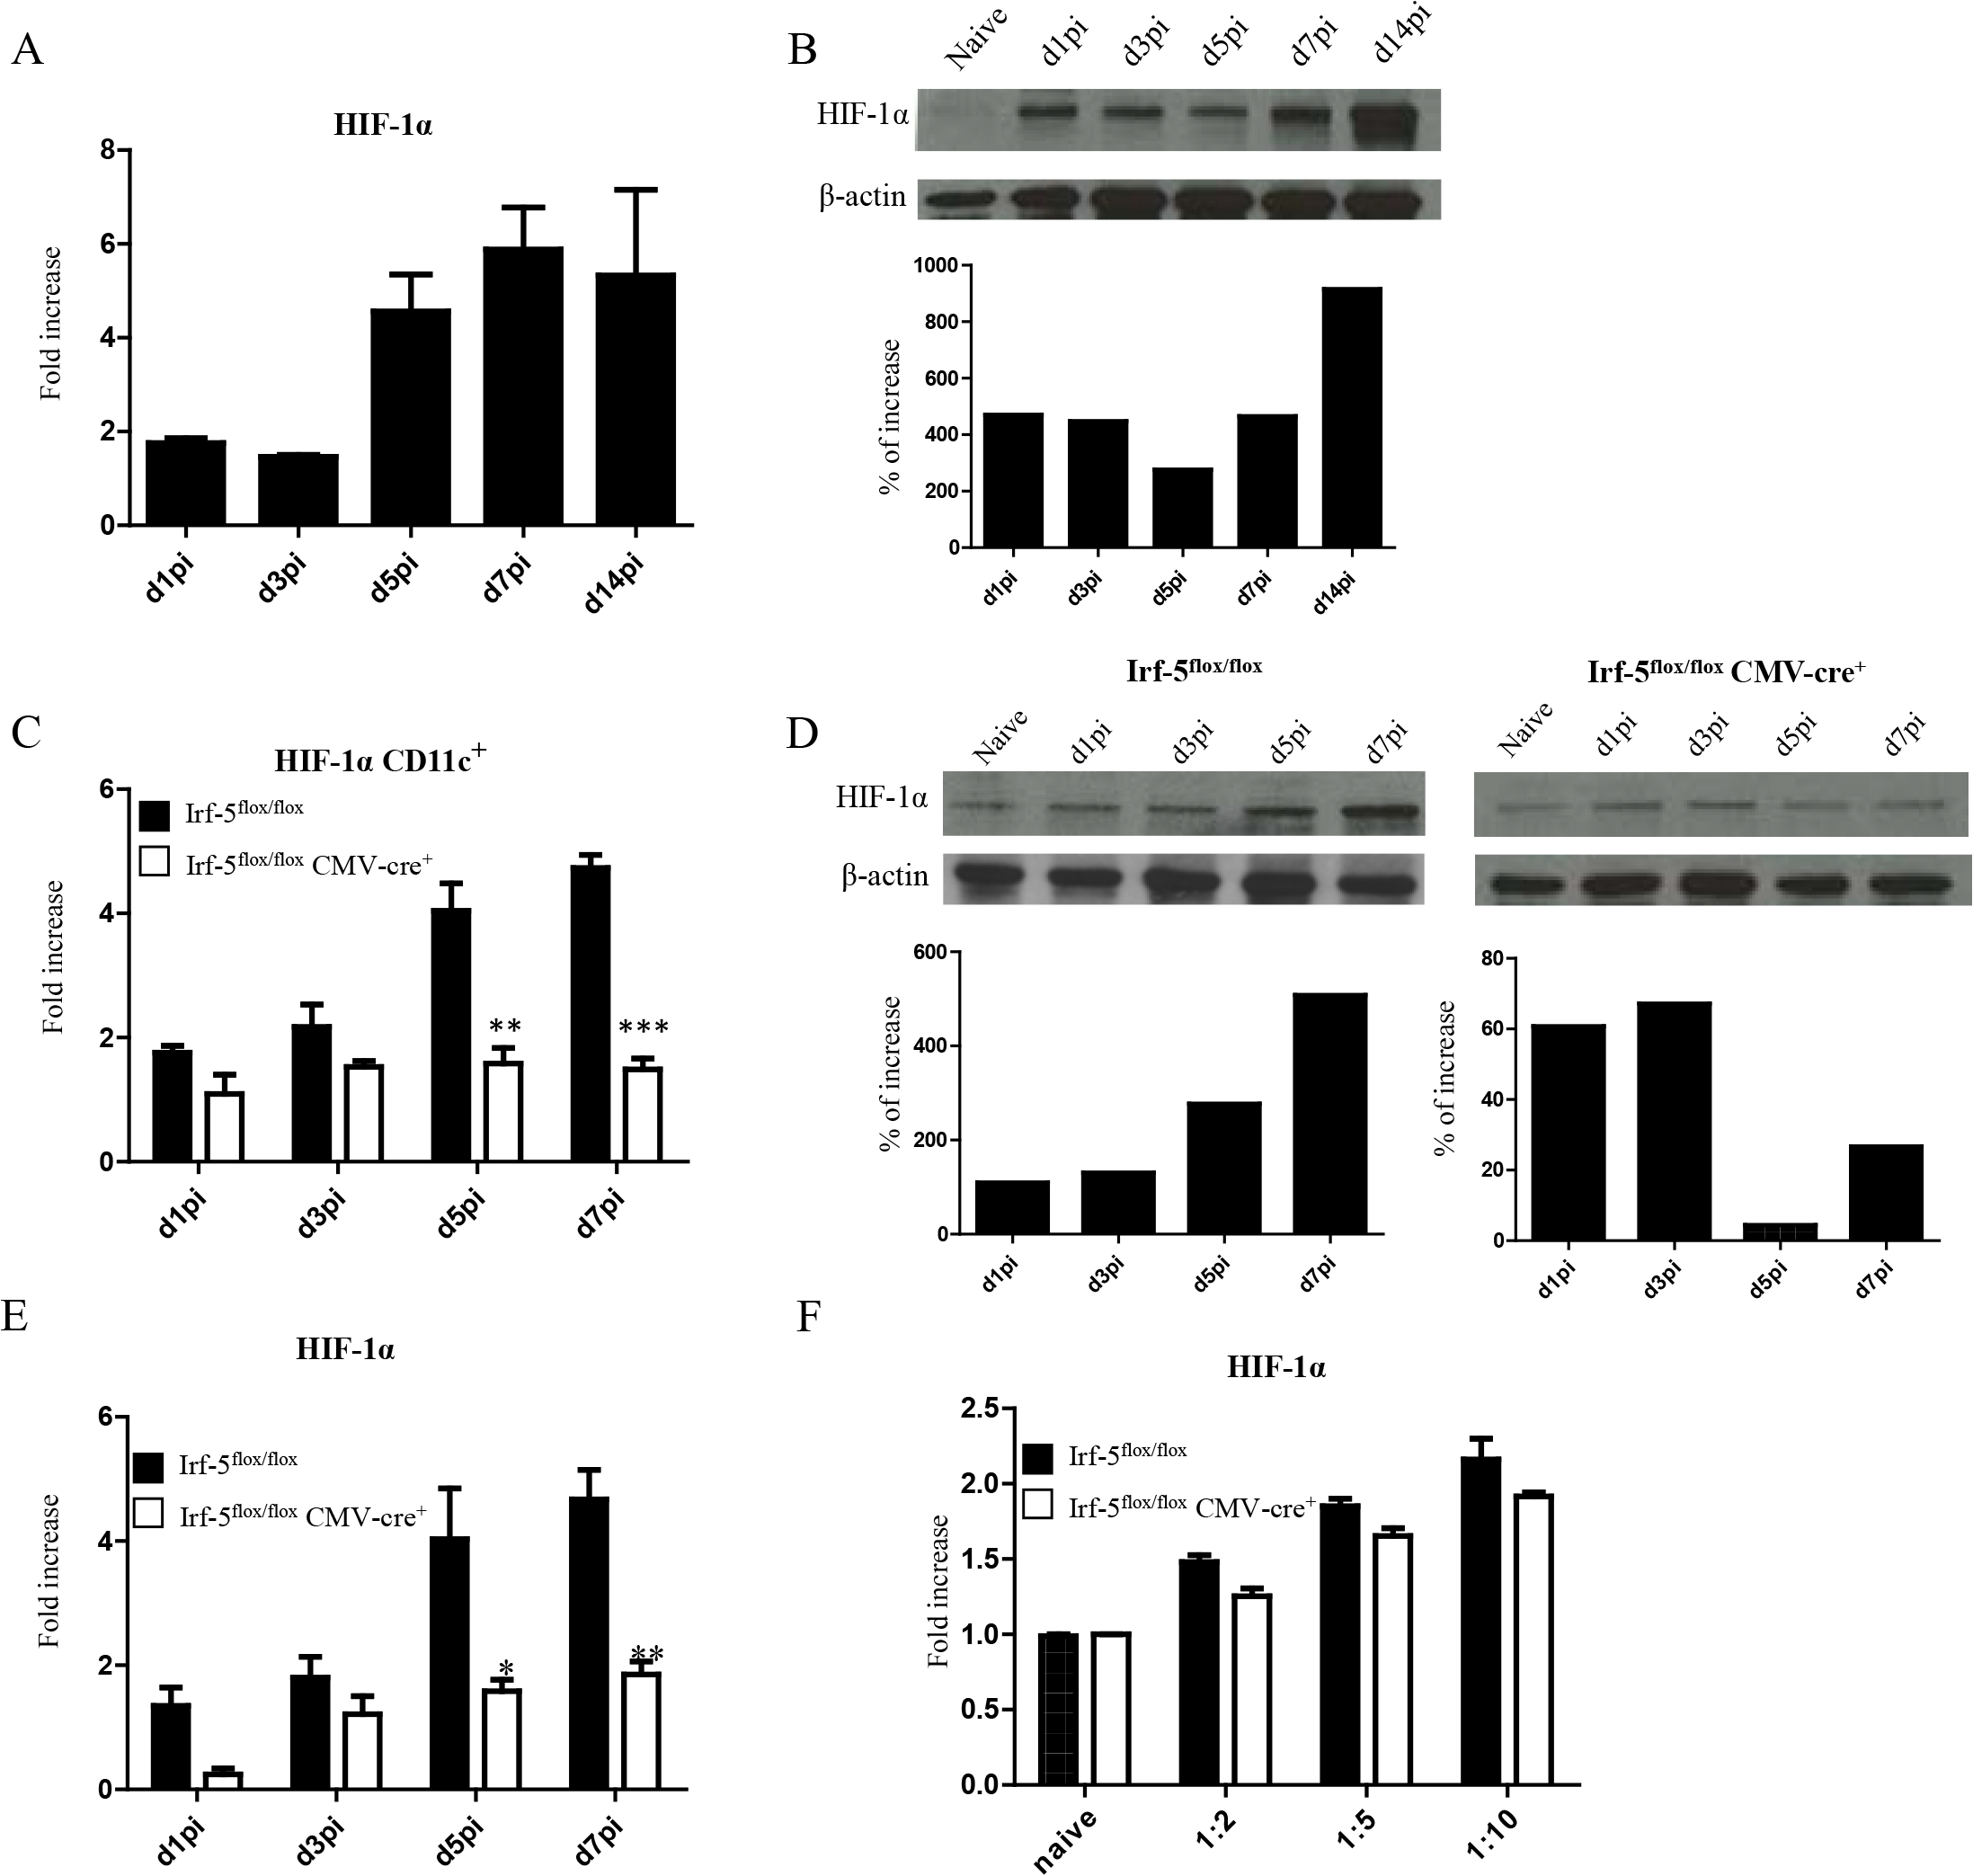 <i>L</i>. <i>donovani</i> infection induces HIF-1α expression in CD11c<sup>hi</sup> splenic DCs in an IRF-5 dependent manner.